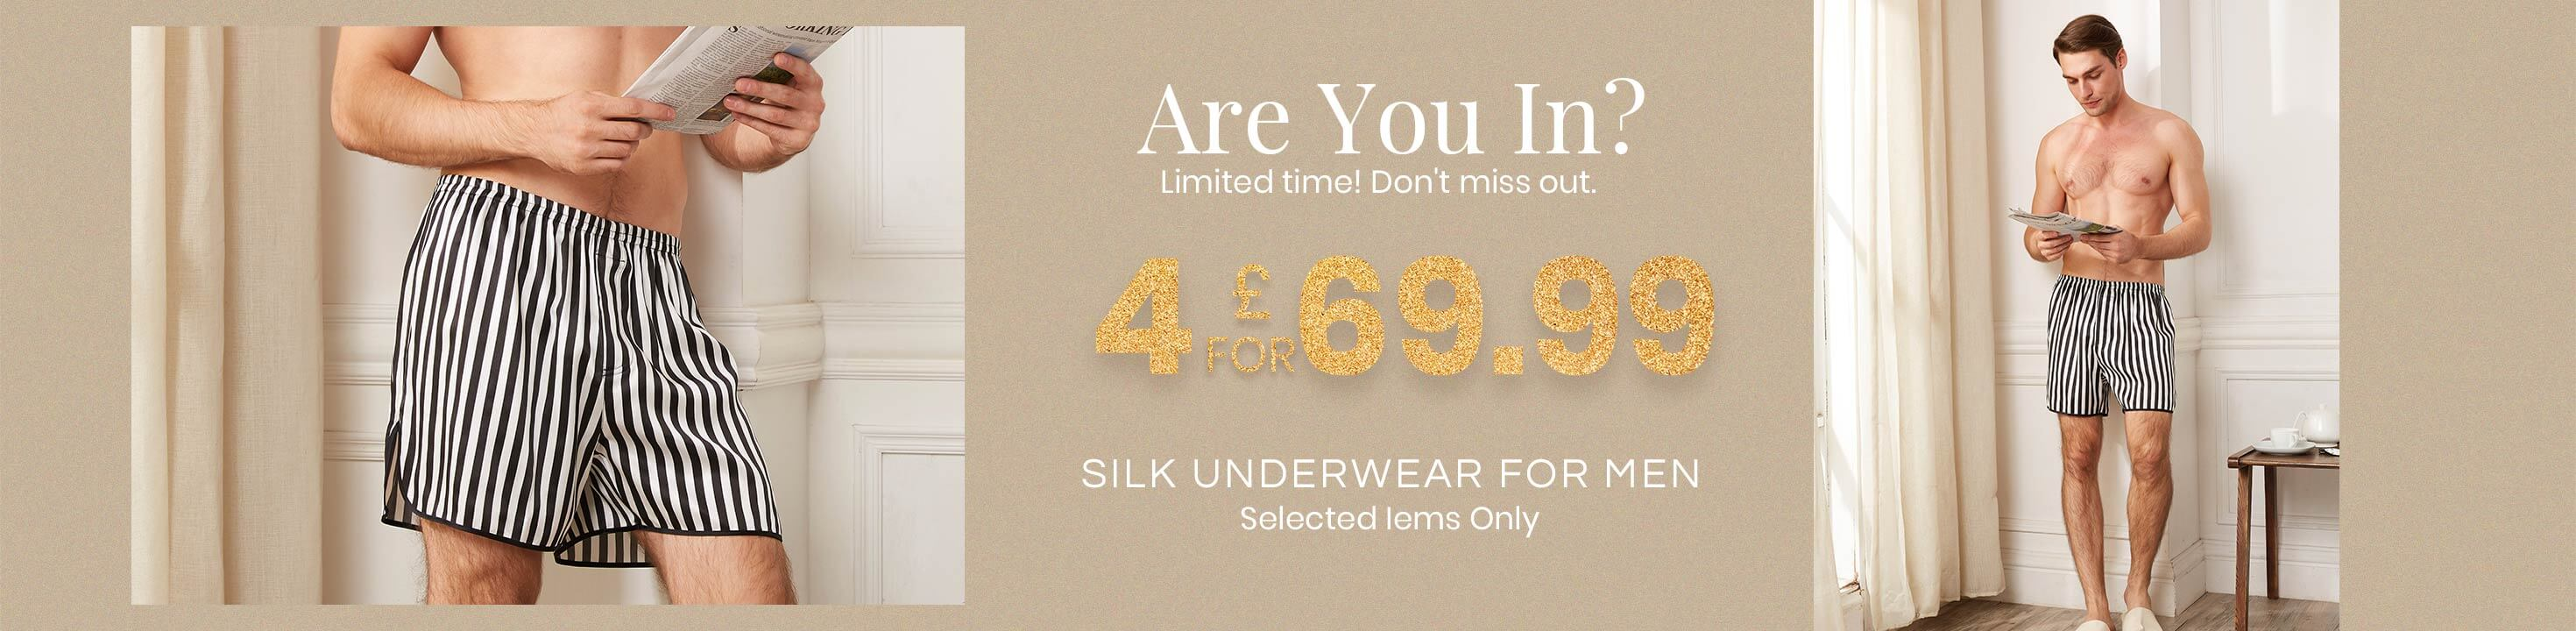 Silk Underwear for Men